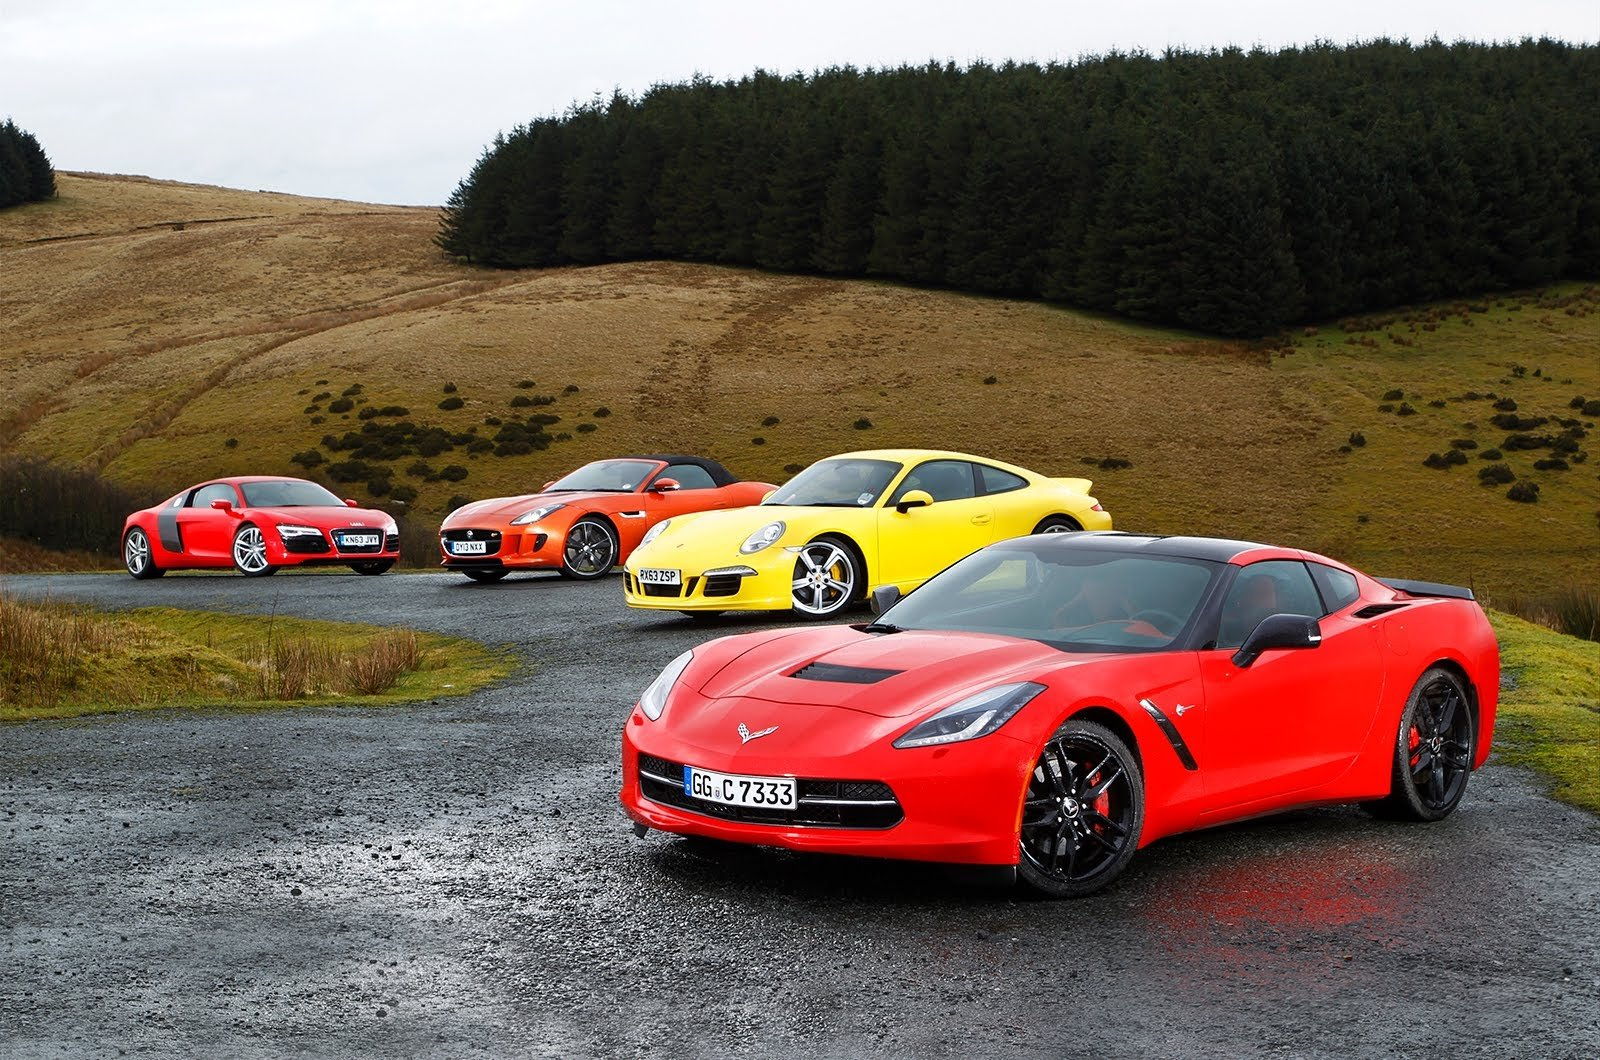 Watch the Corvette go toe-to-toe against its European rivals!